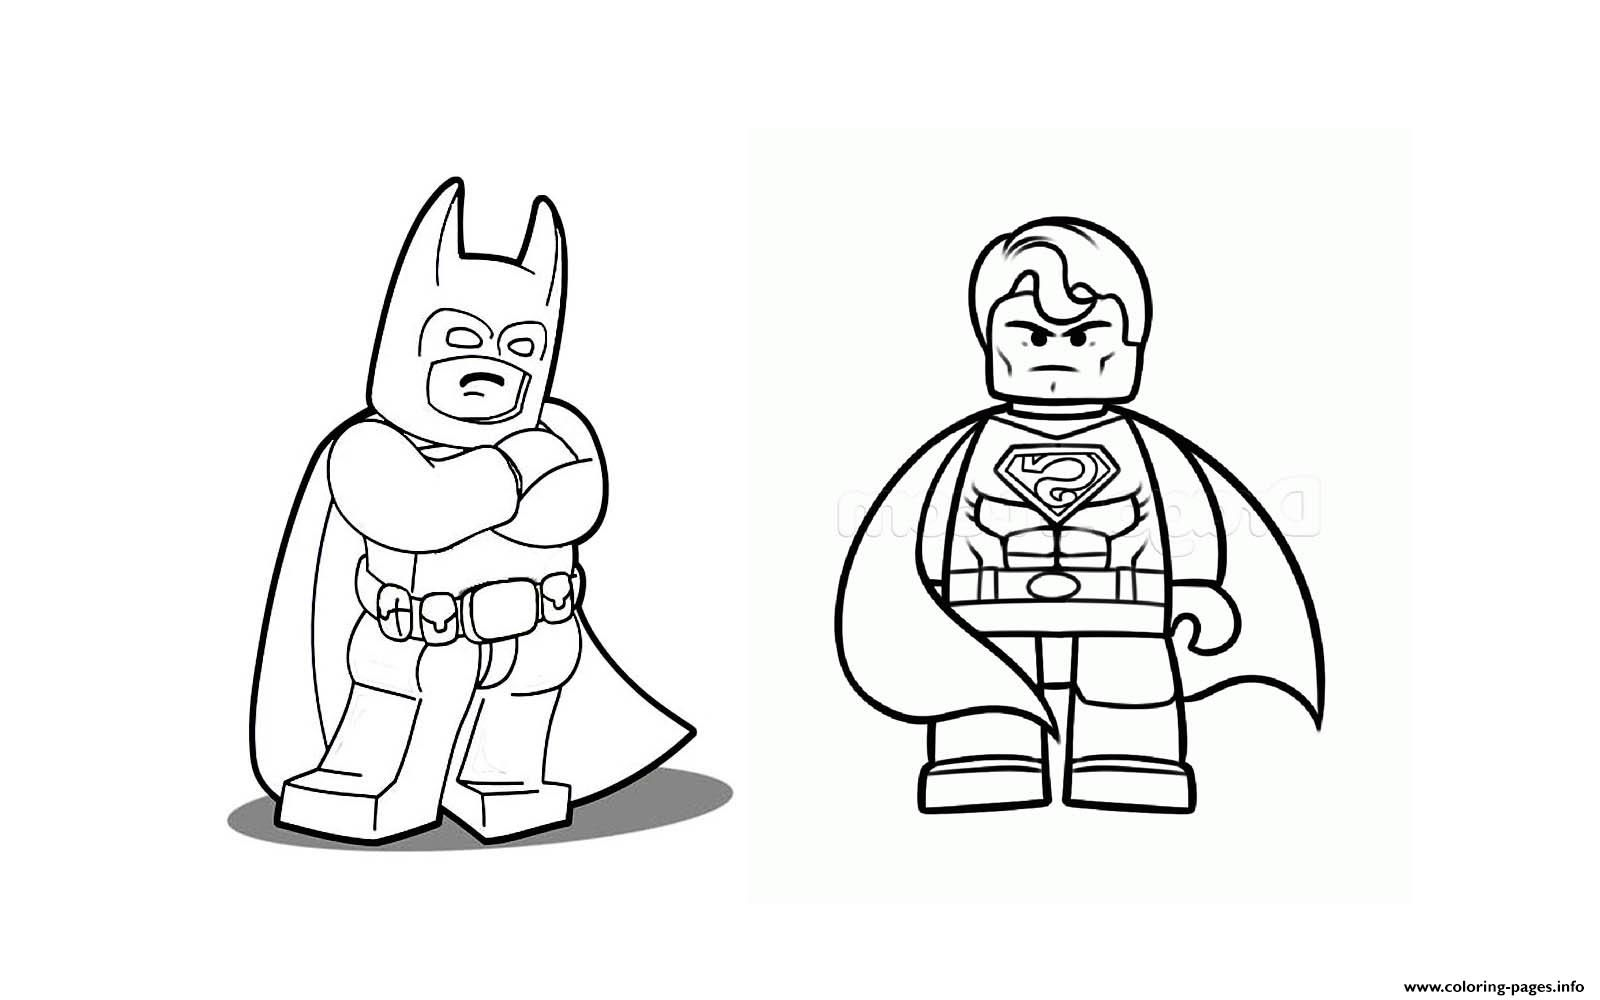 Print batman vs superman lego 2016 coloring pages | Coloring 4 Kids ...